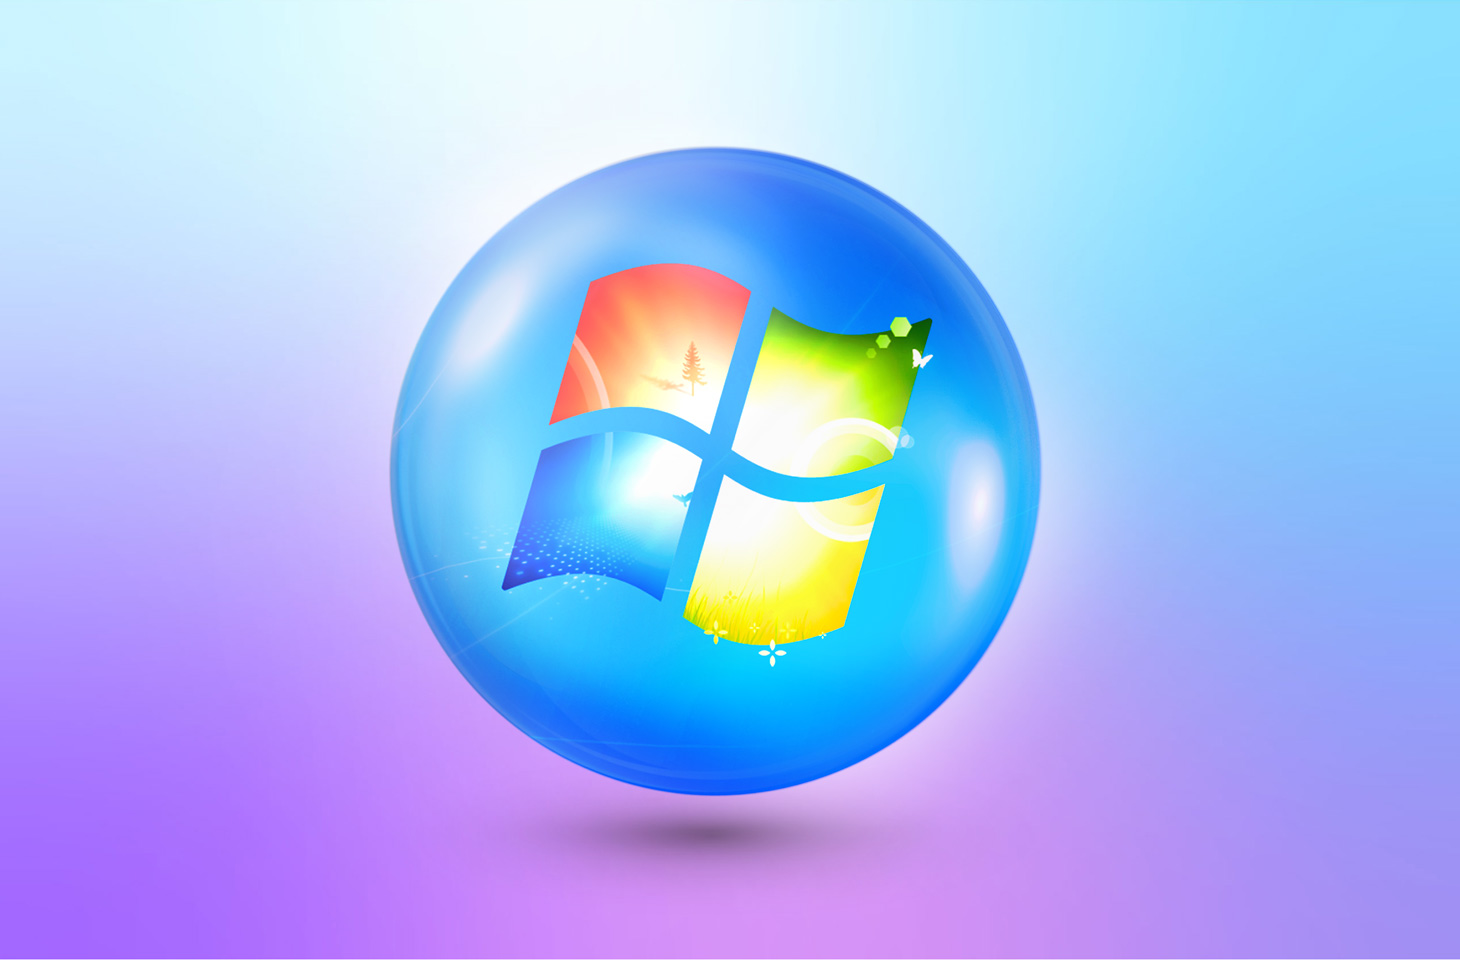 Microsoft Discontinues Support For Windows 7 What Users Need To Do Kaspersky Official Blog